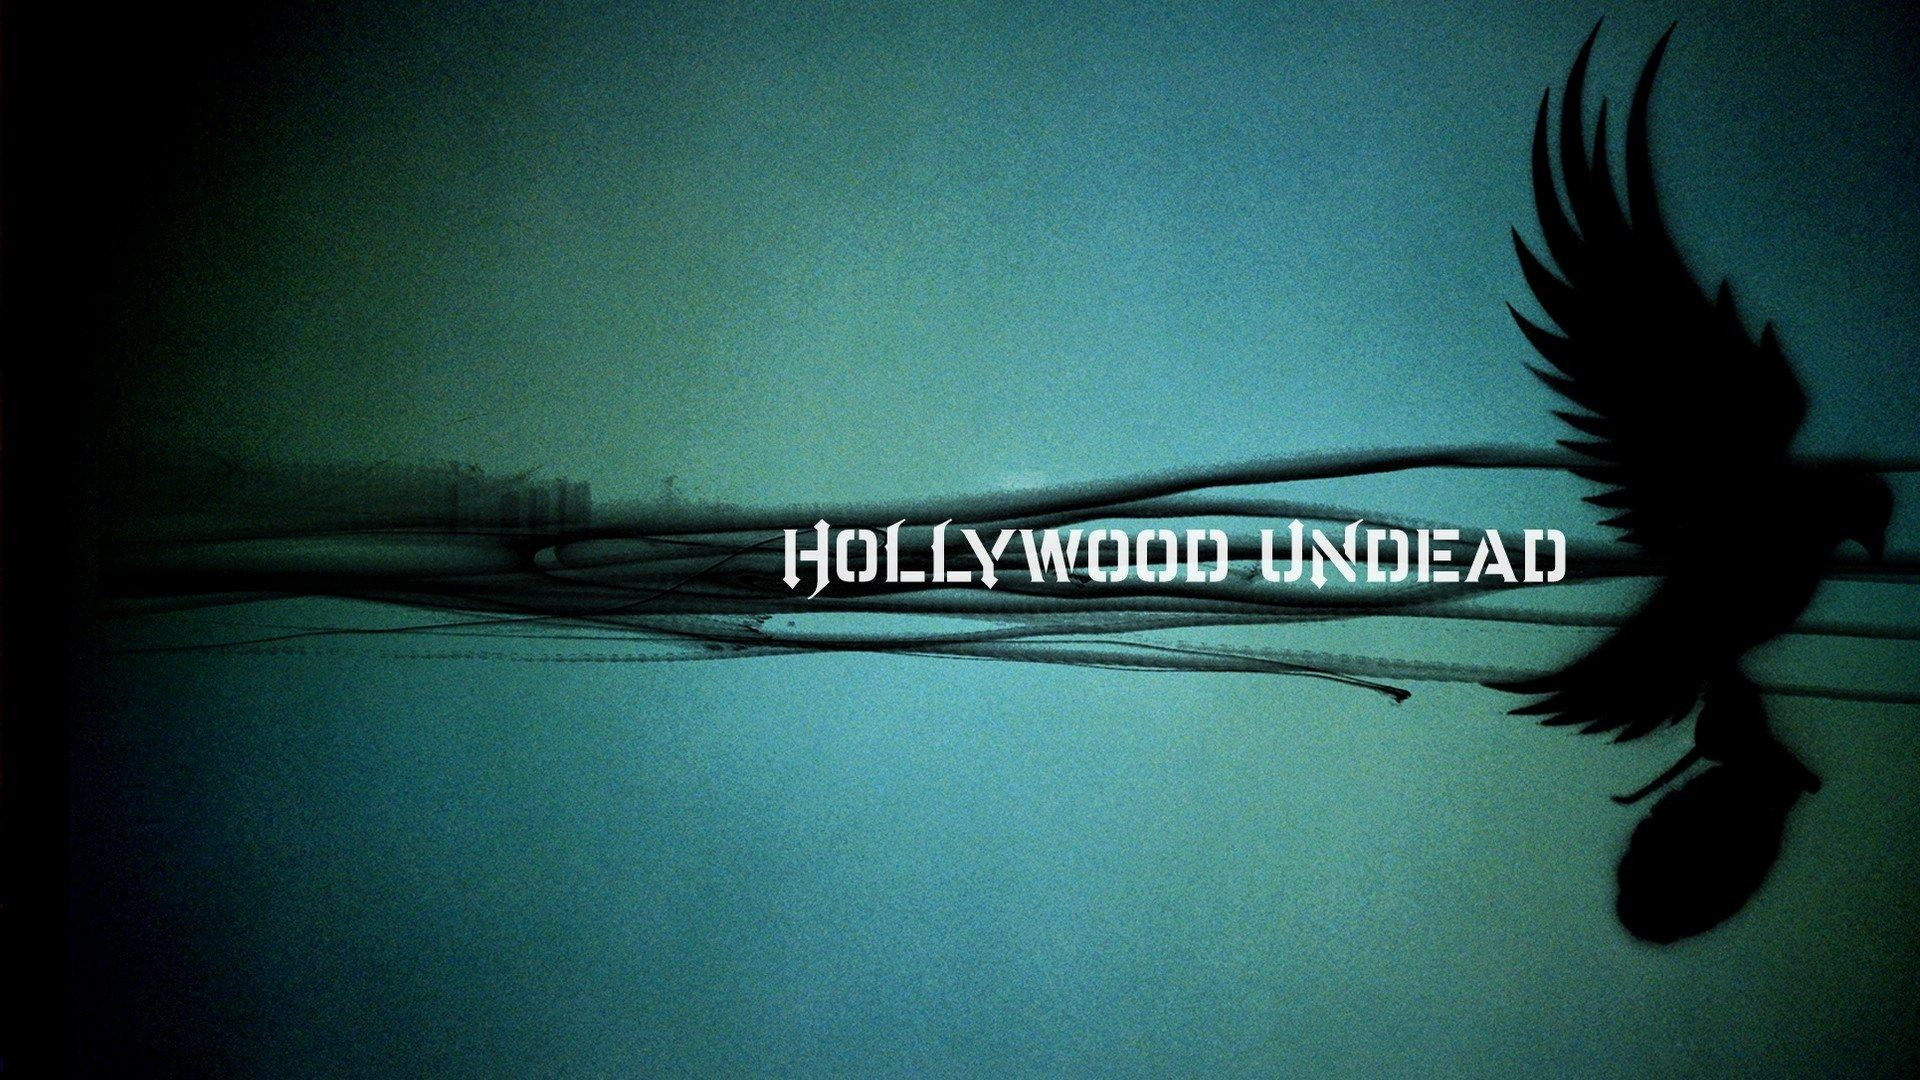 5. hollywood undead wallpaper5